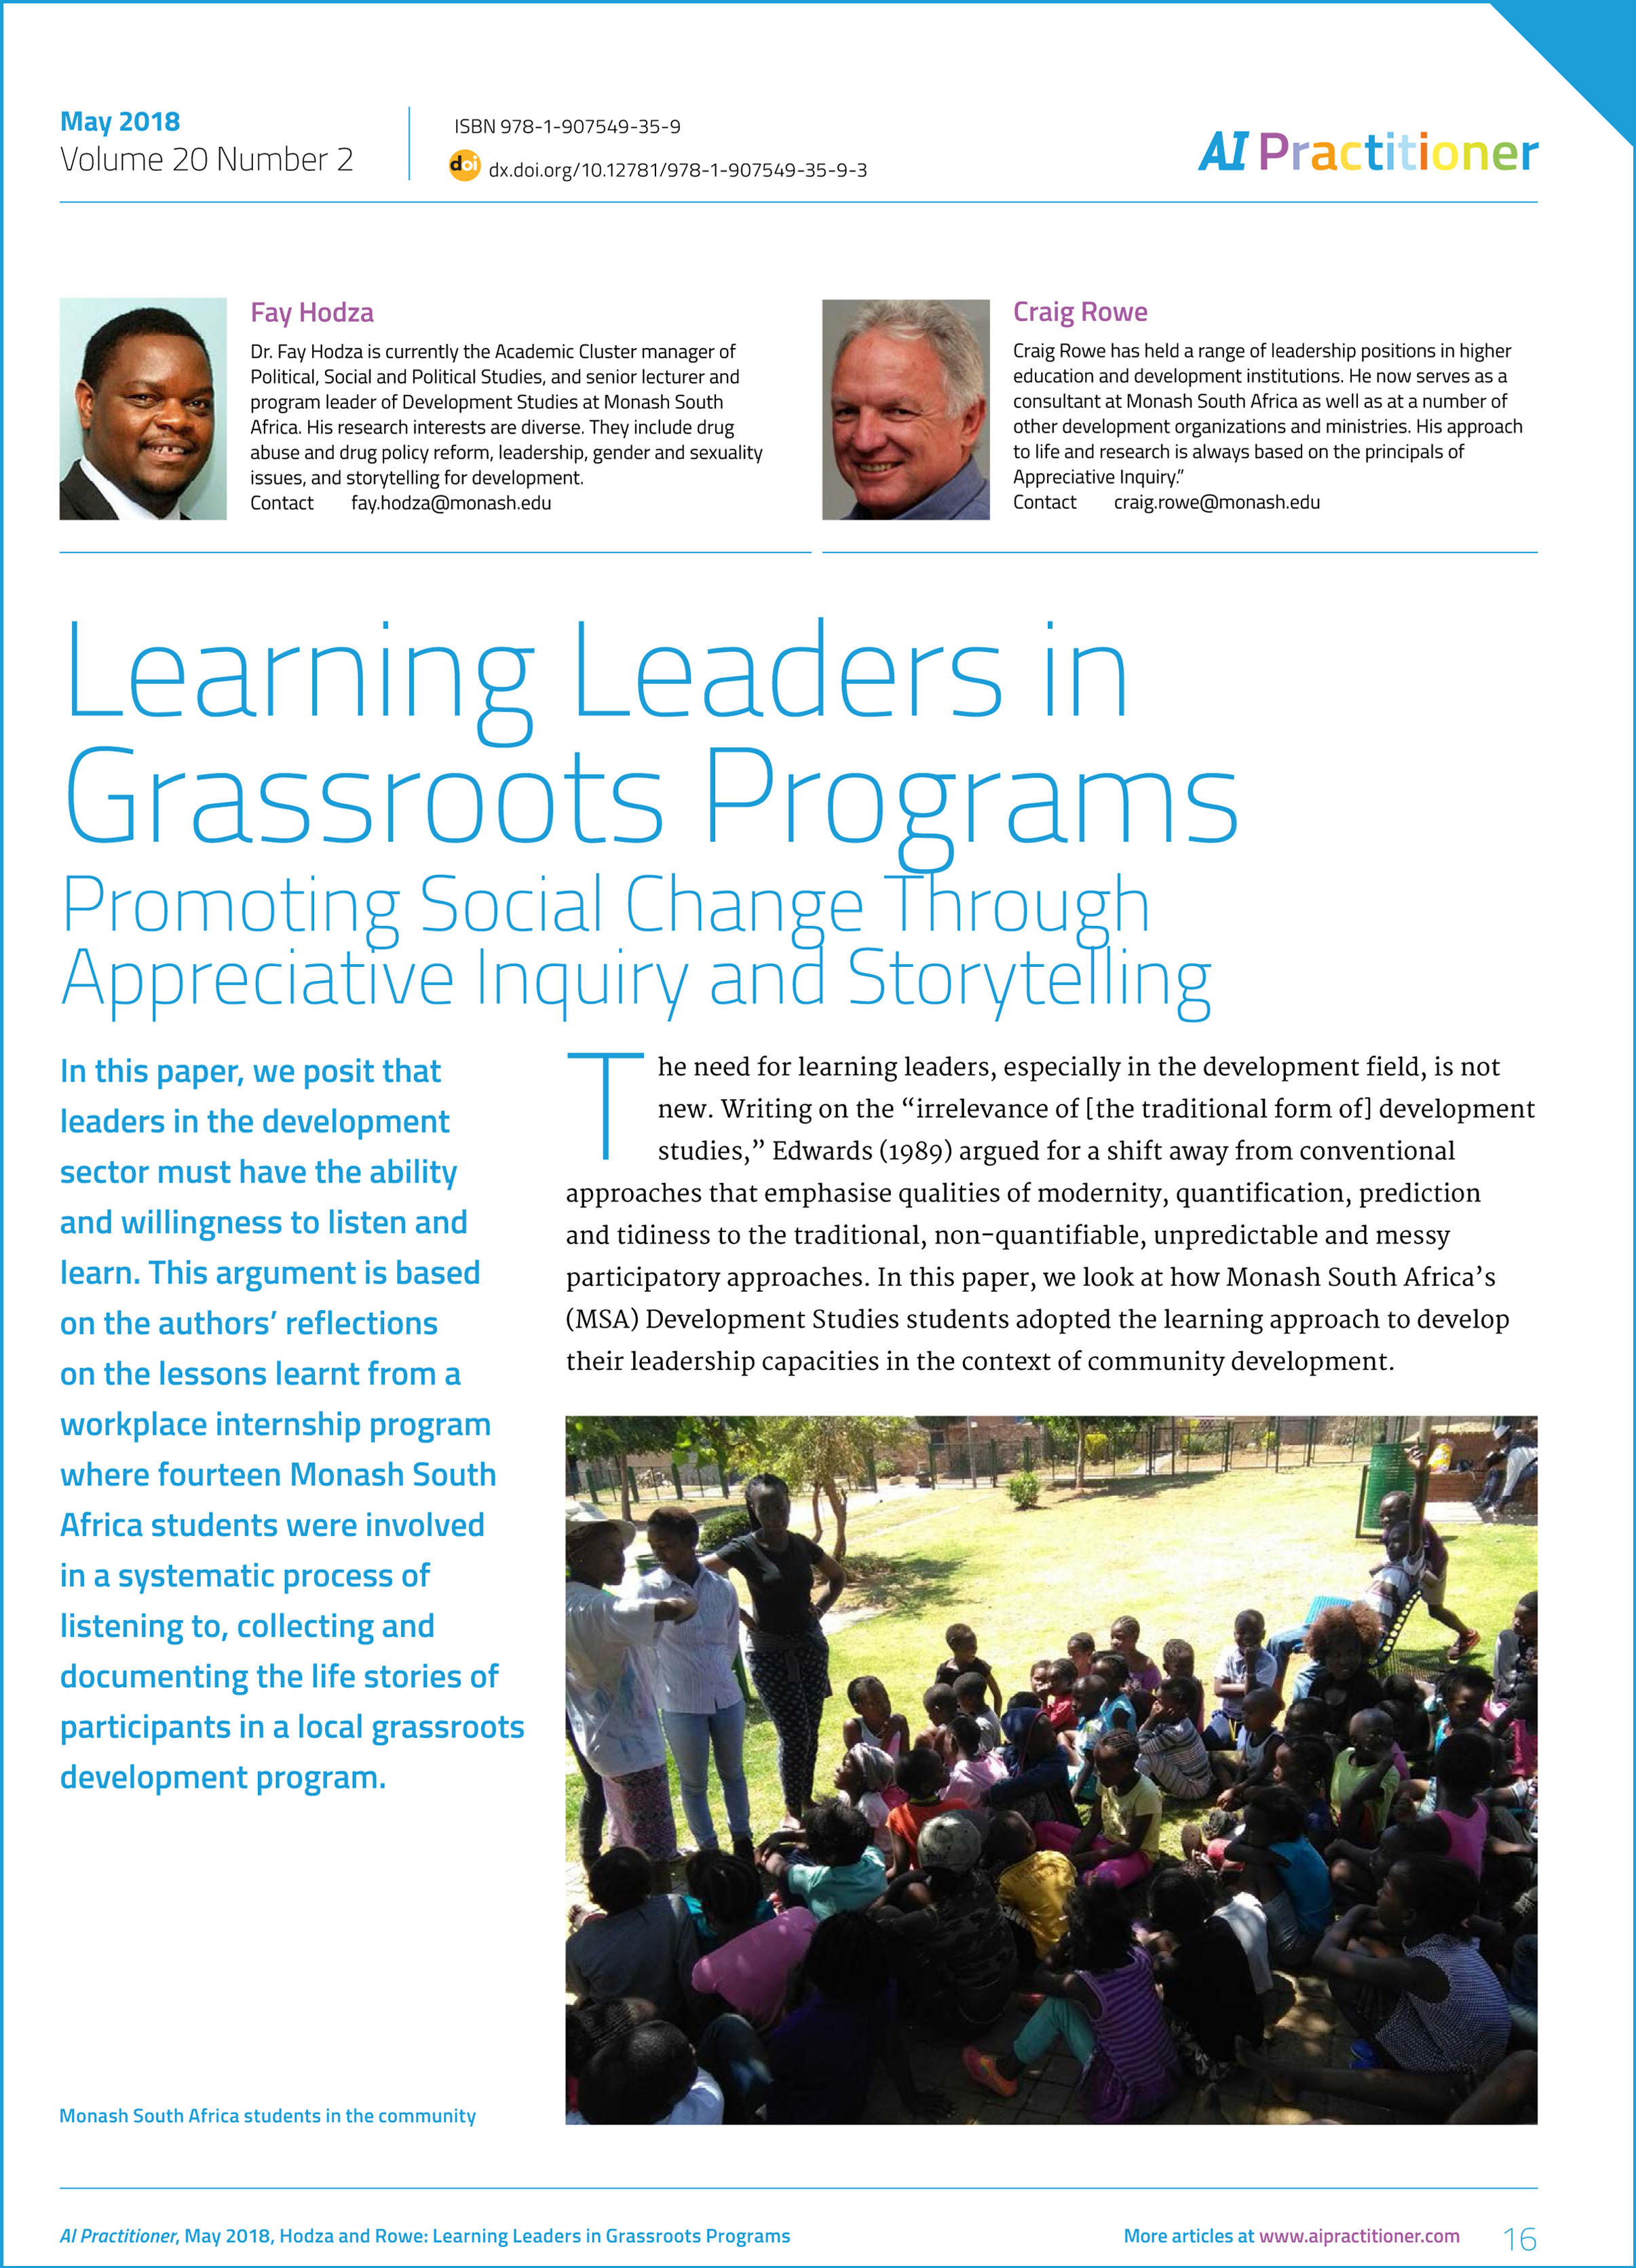 AI Practitioner May 2018 Learning Leaders: Learning Leaders in G